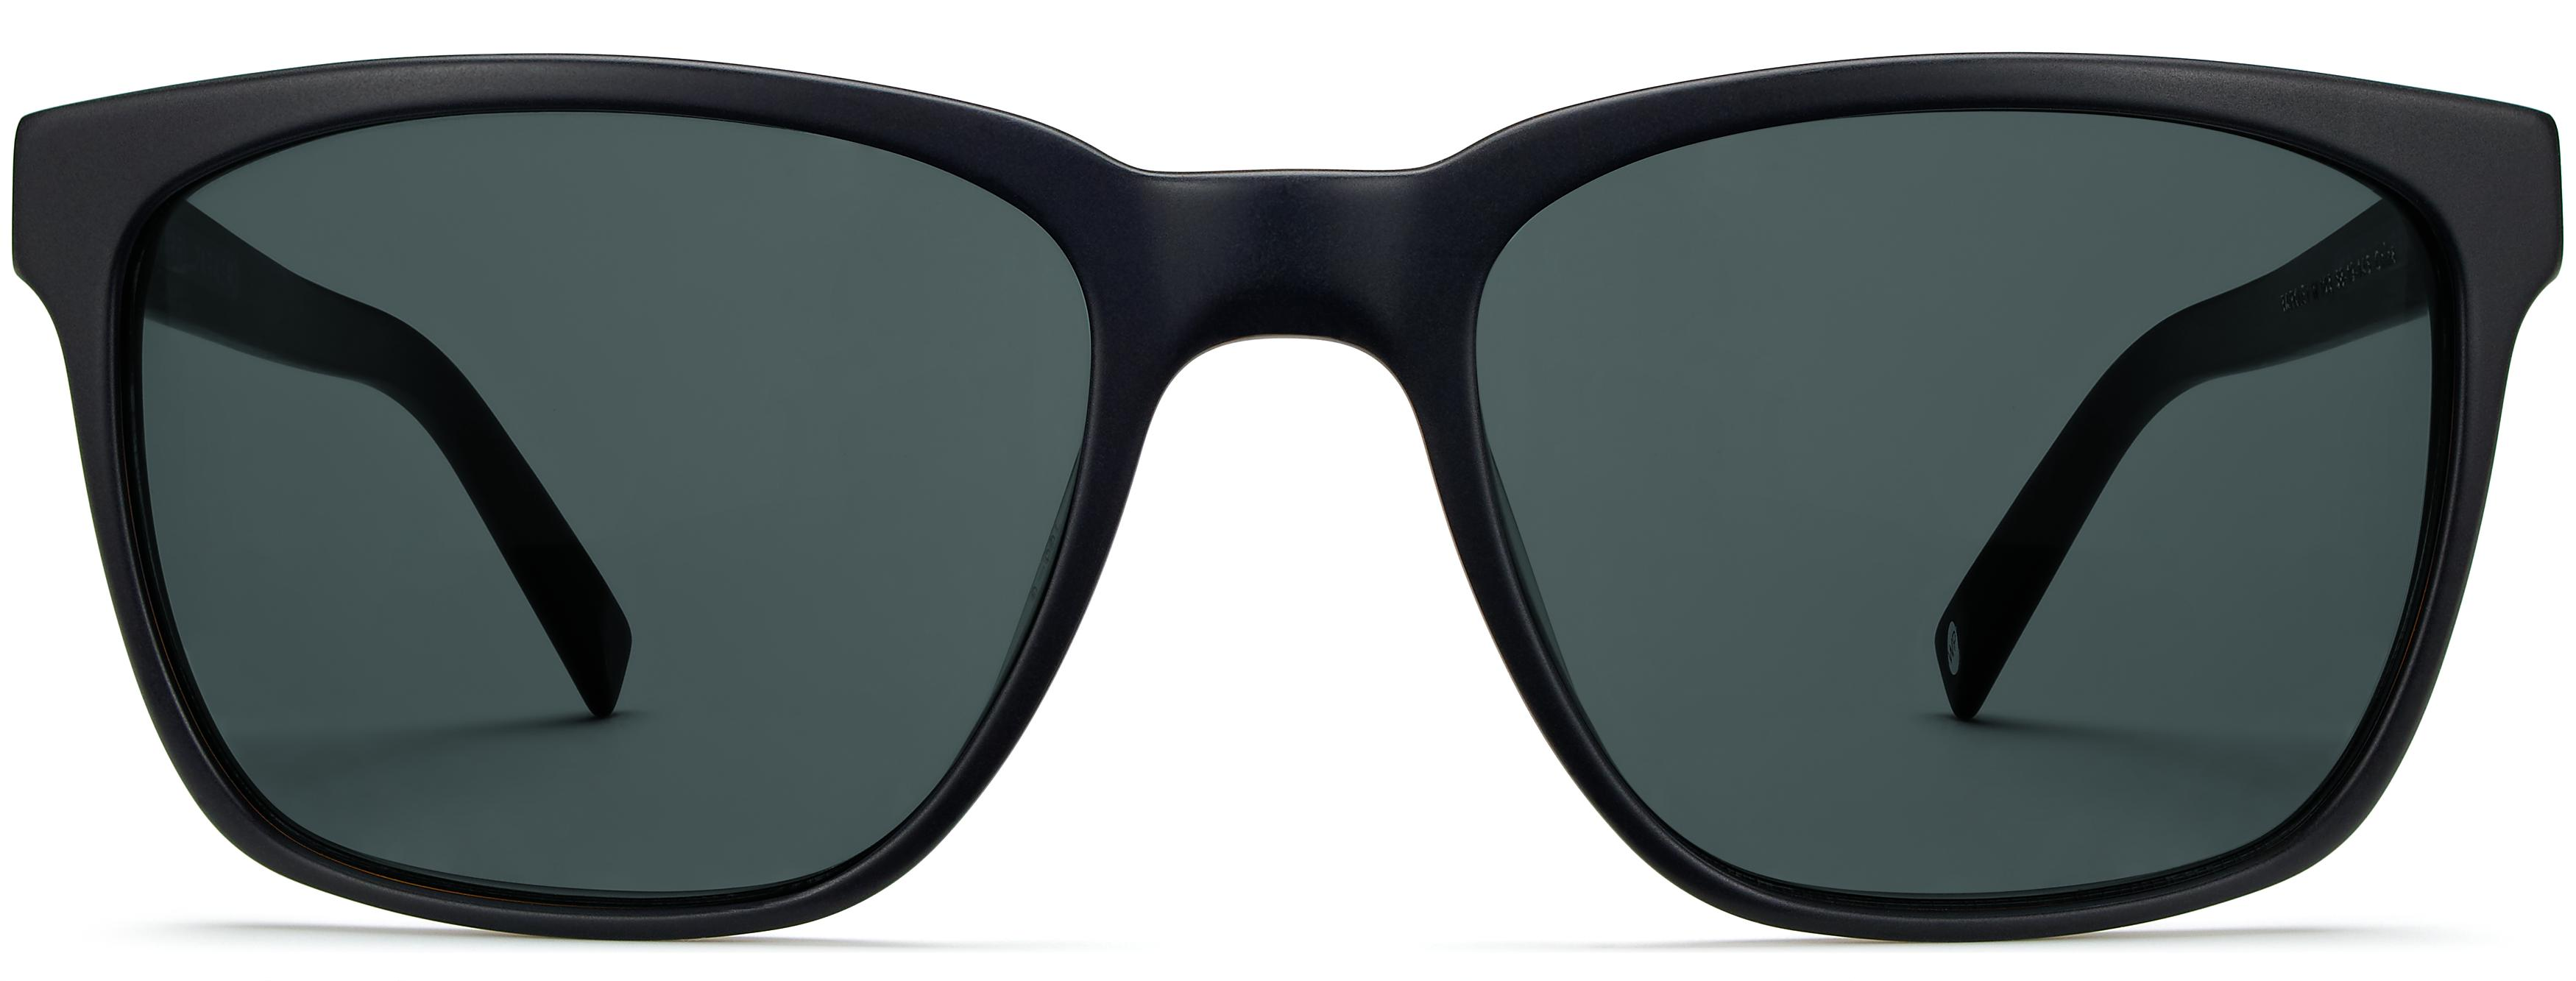 Barkley Wide frames in Black Matte Eclipse